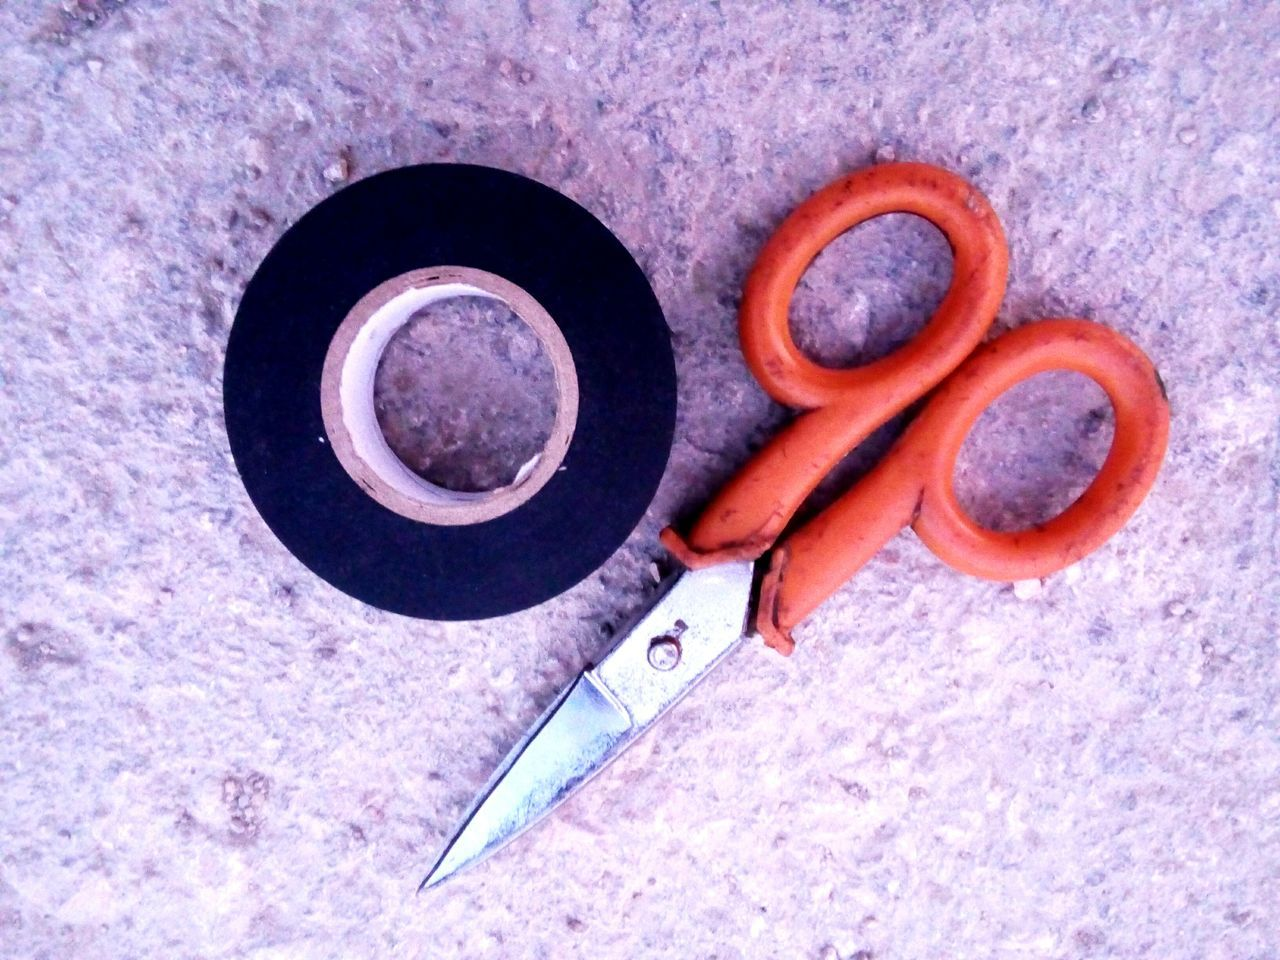 No People Close-up Scissors Tape Eletric Eletric Work Eletric Tools Tools Repairing Repair Repair Work Black Tape Orange Scissors Eletric Cables Eletricity Working Tools